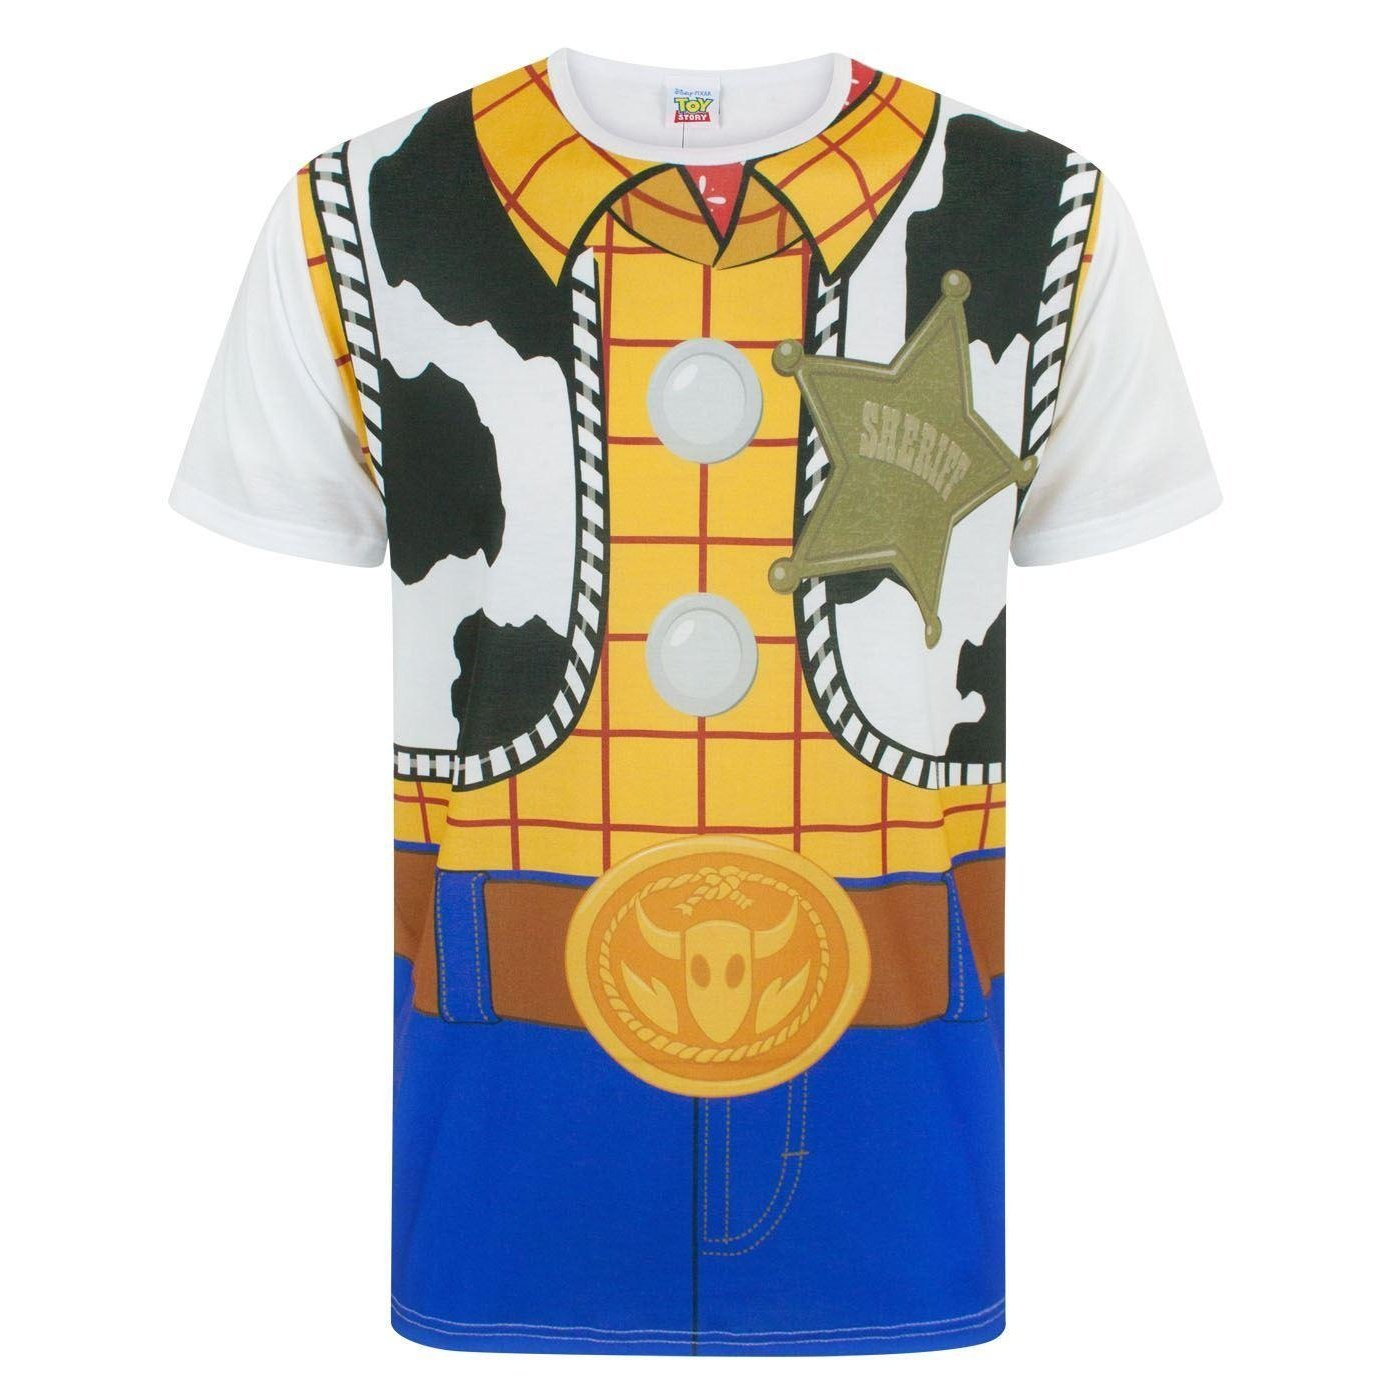 55f09f80 Disney Toy Story Woody Costume Men's Character Outfit T-Shirt S - XXXL:  Amazon.co.uk: Clothing